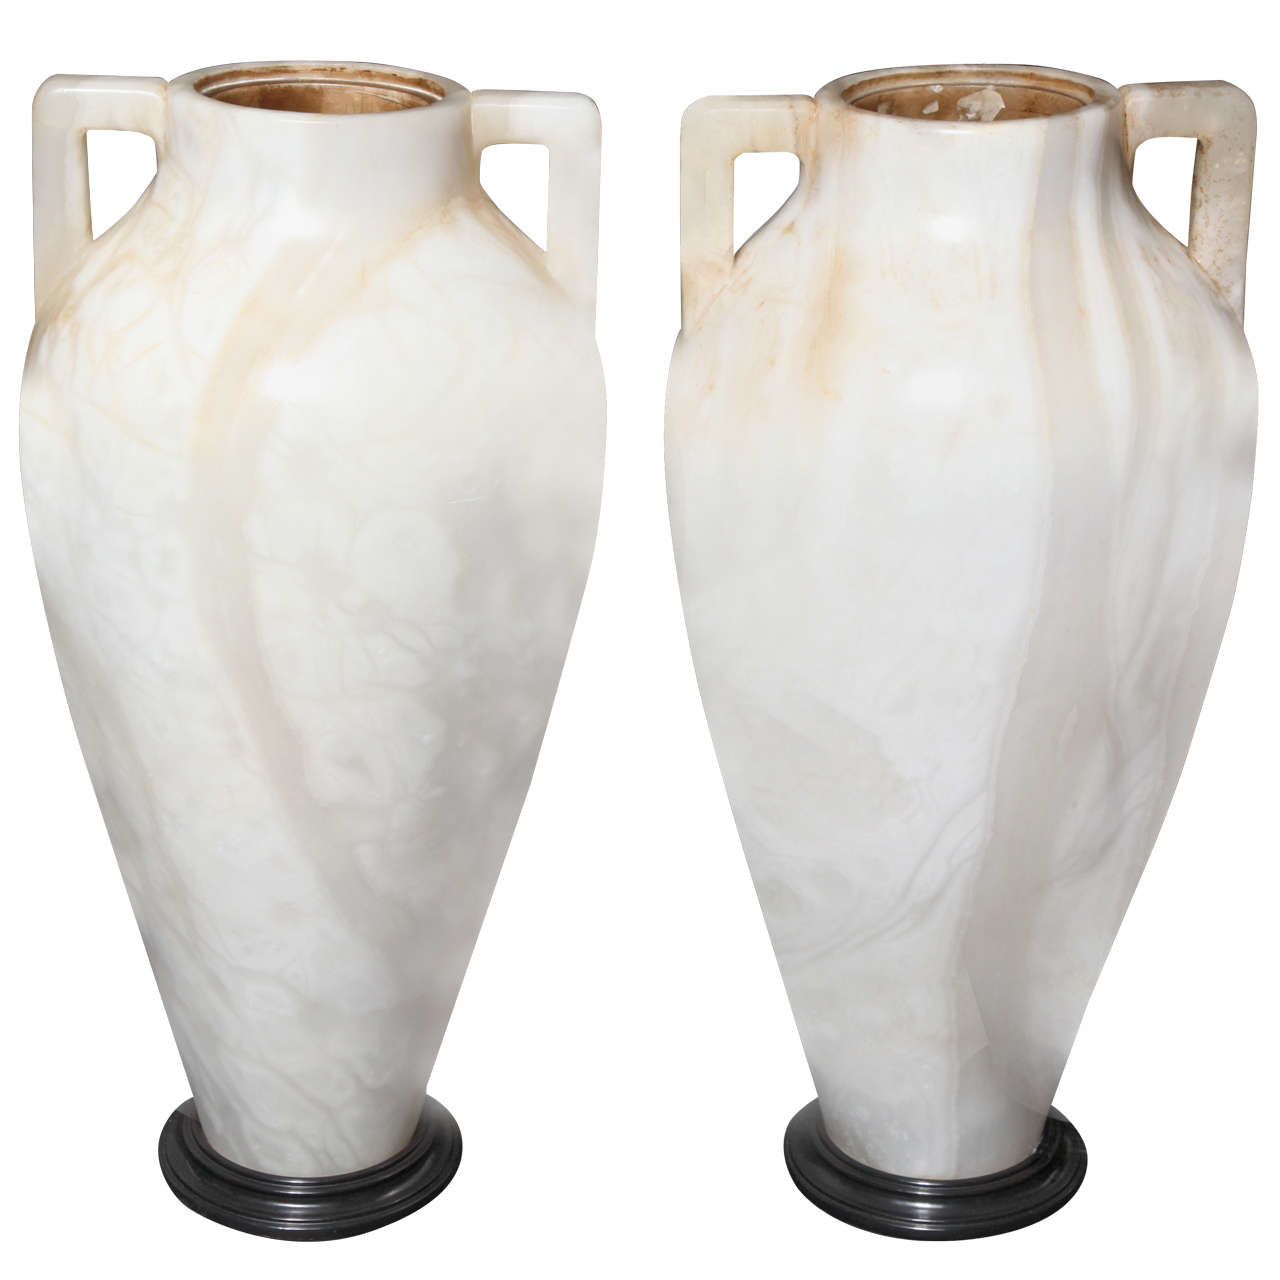 A large pair of french art deco period two handled alabaster vases a large pair of french art deco period two handled alabaster vaseslamps for sale reviewsmspy